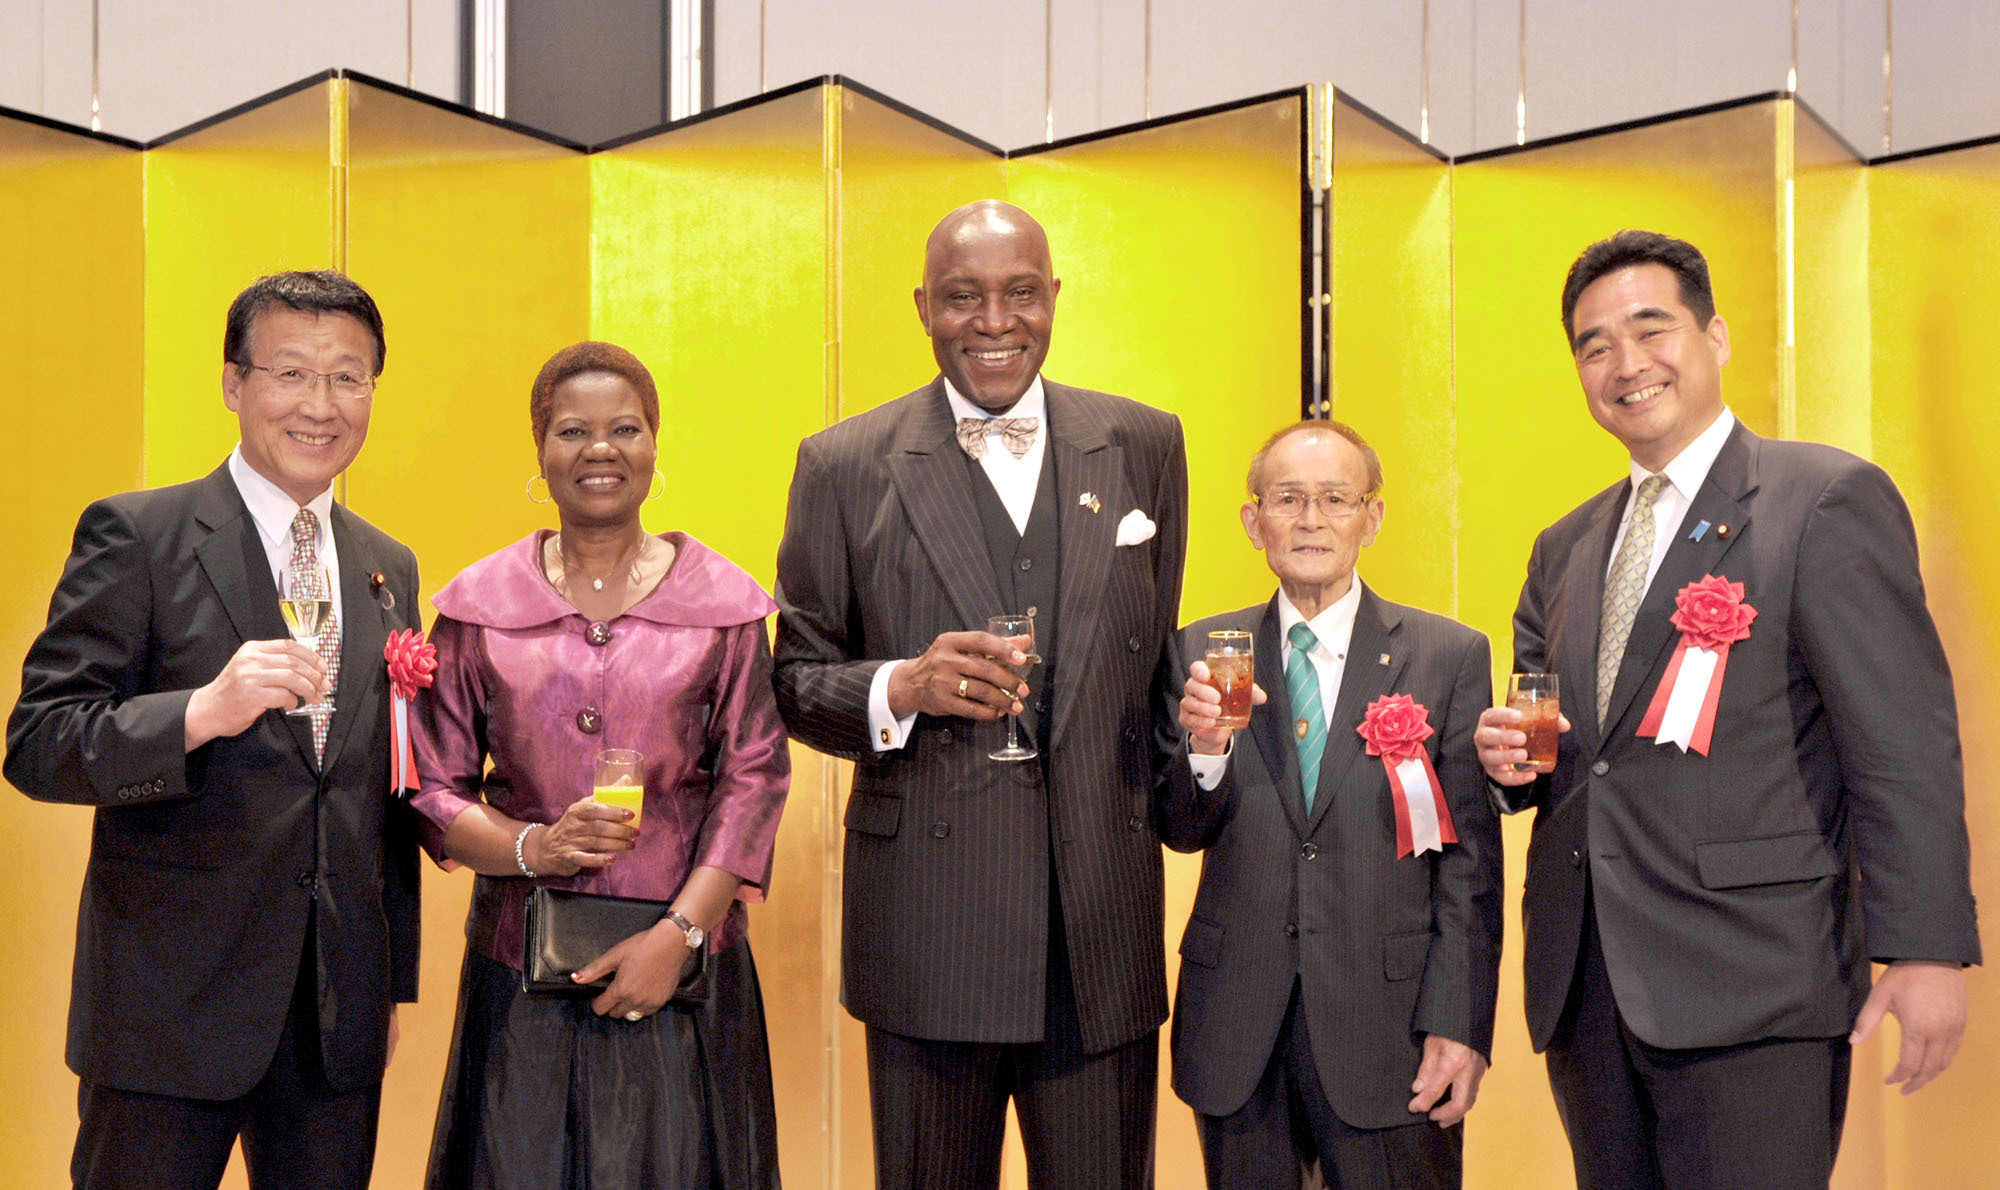 Cameroon Ambassador Pierre Ndzengue (center) prepares to make a toast with (from left) Asahiko Mihara, member of the House of Representatives; the ambassador's wife Alphonsine; Yasumu Sakamoto, former Nakatsue mayor and present director of the Nakatsue Village Earth Foundation; and State Minister for Financial Affairs Manabu Sakai at a reception to celebrate the country's 44th National Day at the Marriott Hotel in Tokyo on June 20. | YOSHIAKI MIURA